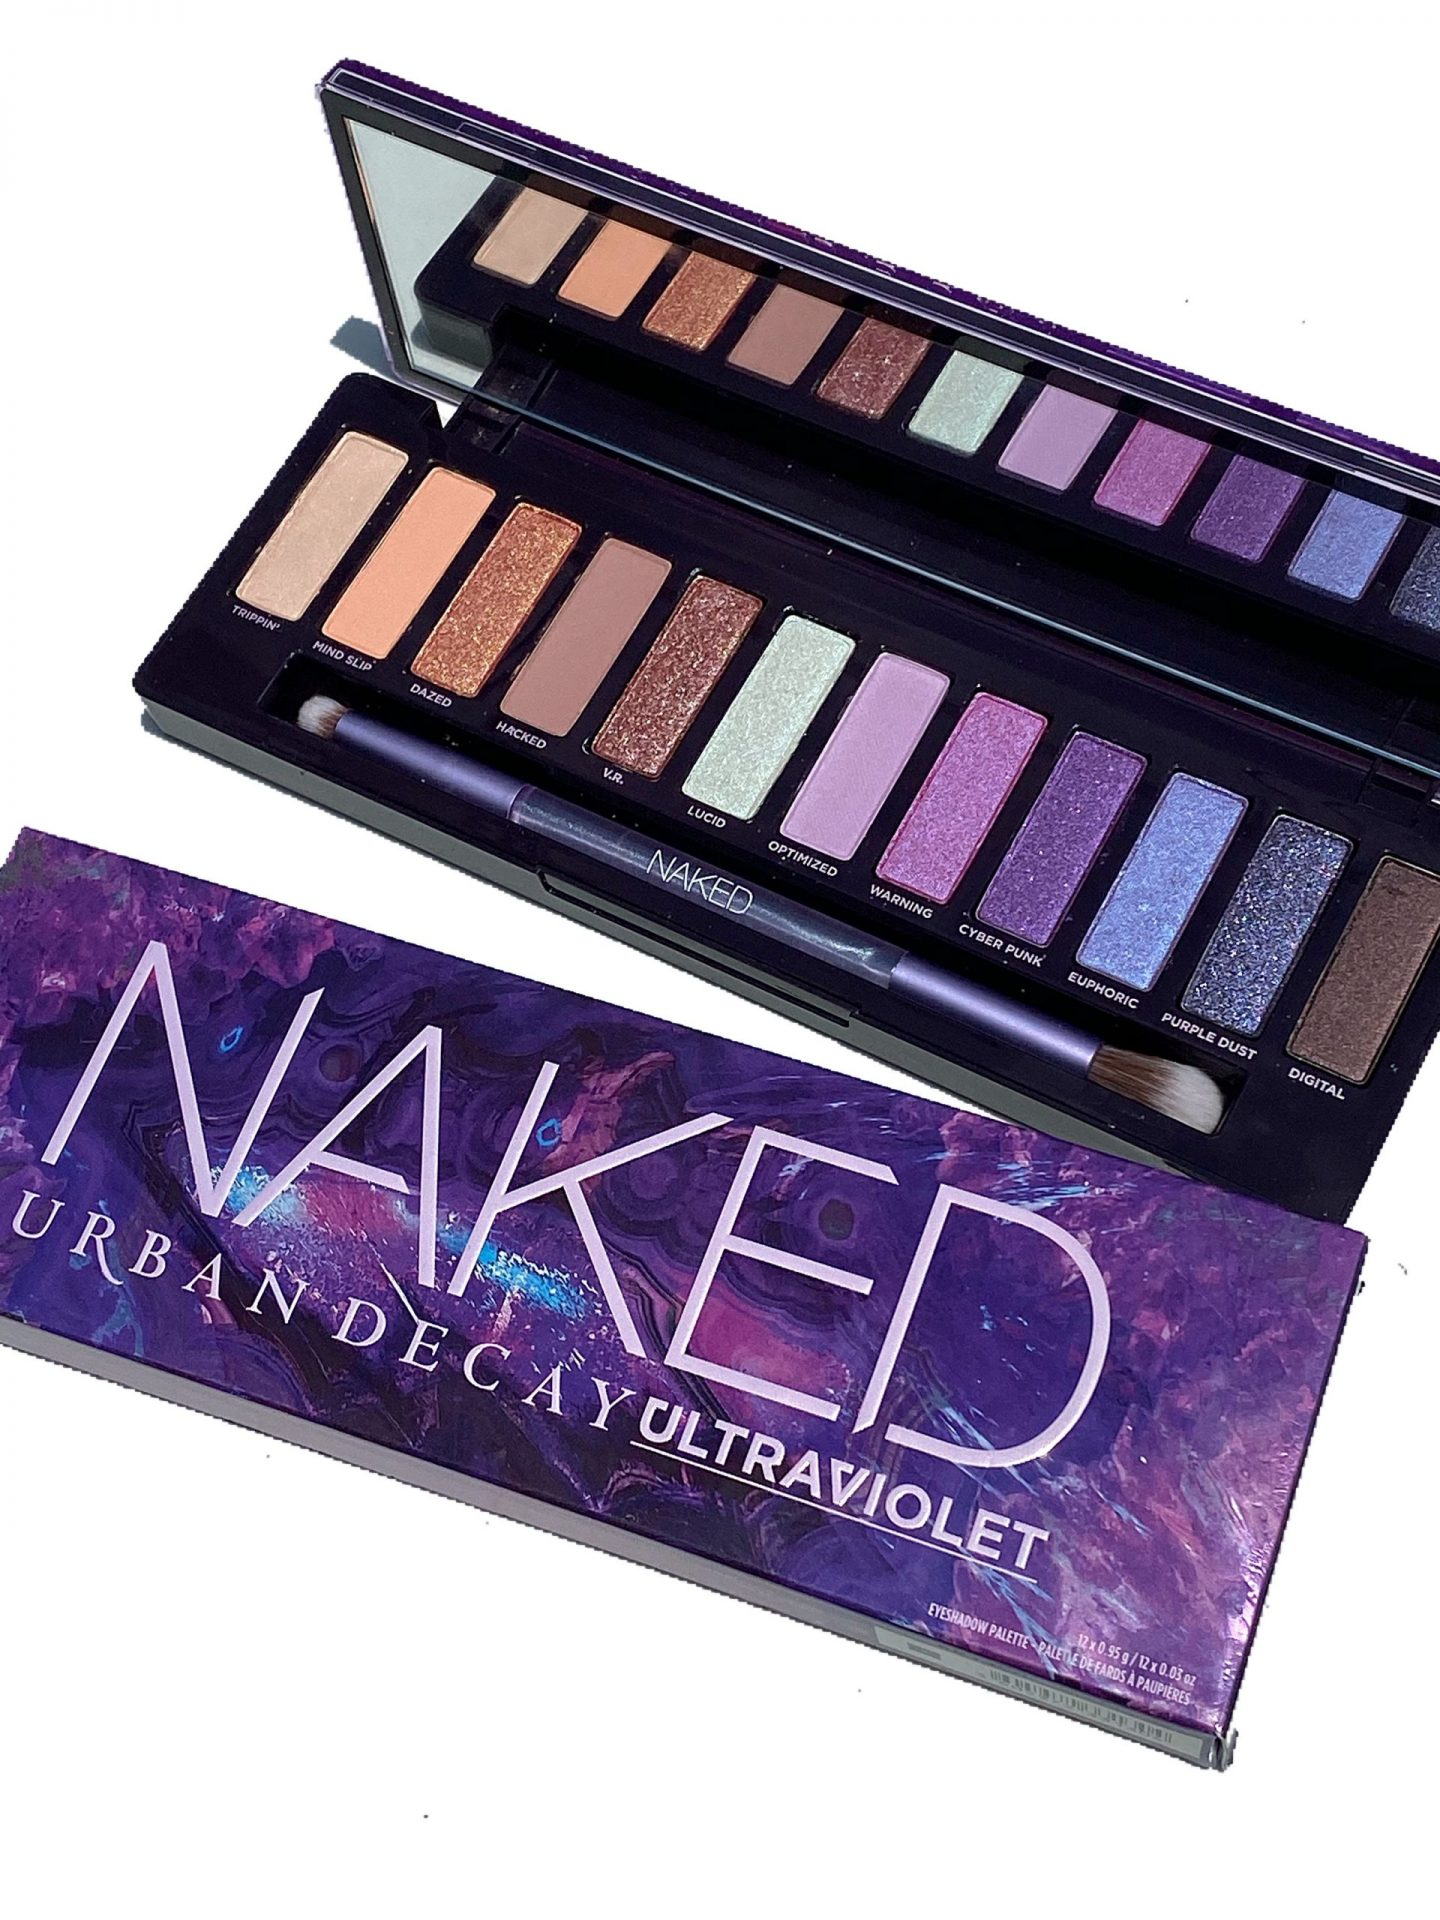 Urban Decay Naked Ultraviolet Palette Eyeshadow Photos & Swatches